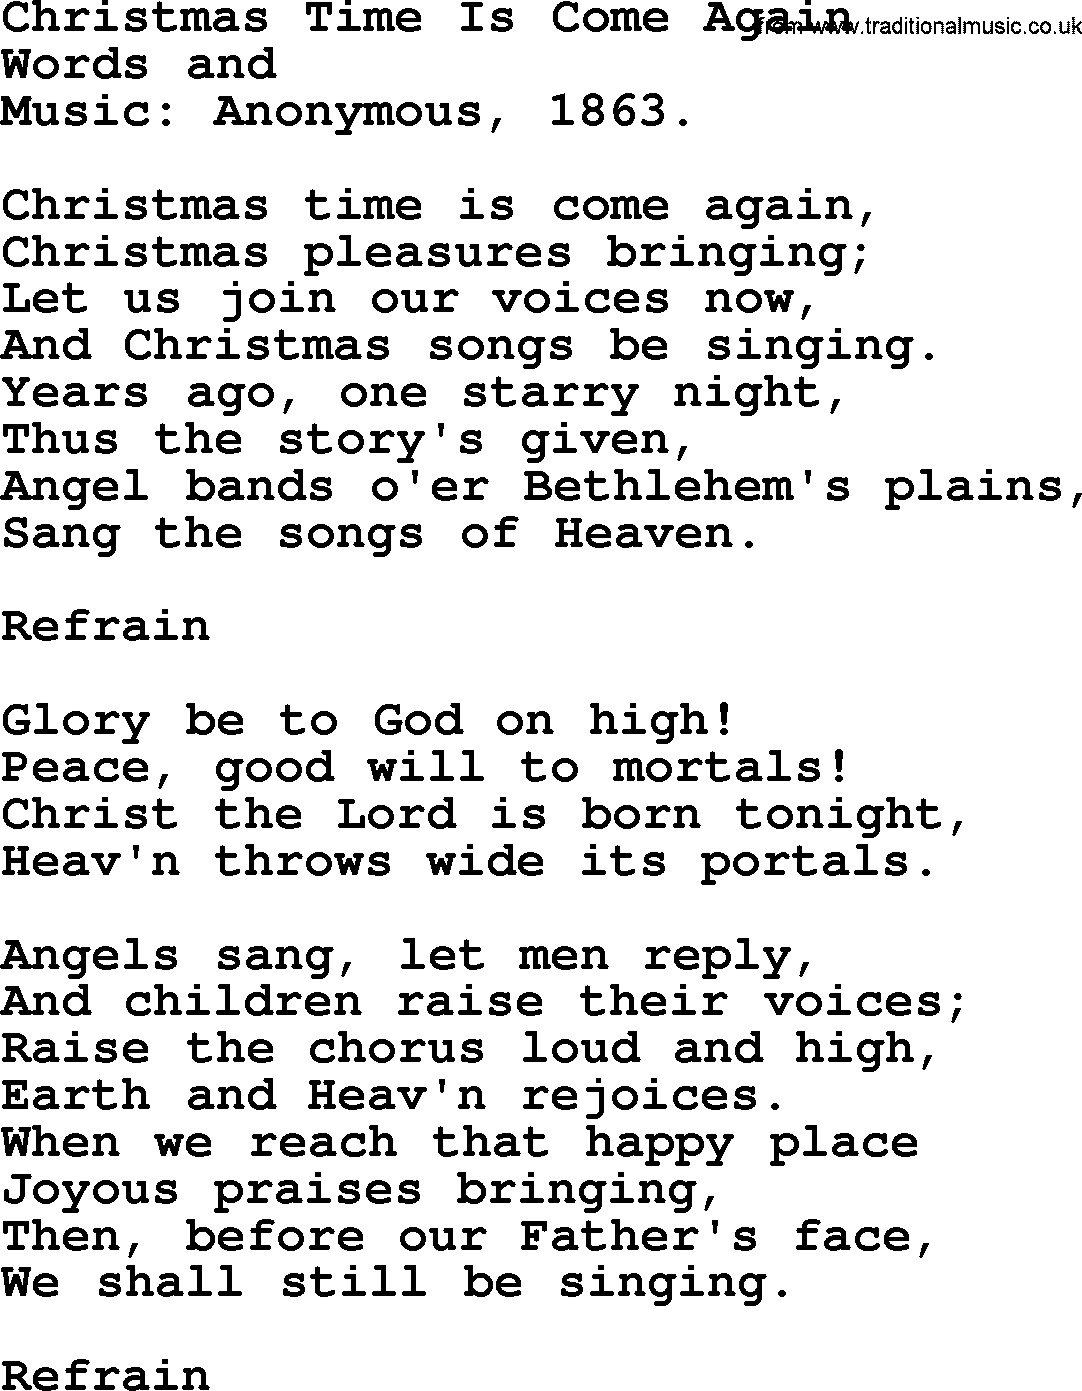 Christmas Hymns, Carols and Songs, title: Christmas Time Is Come ...